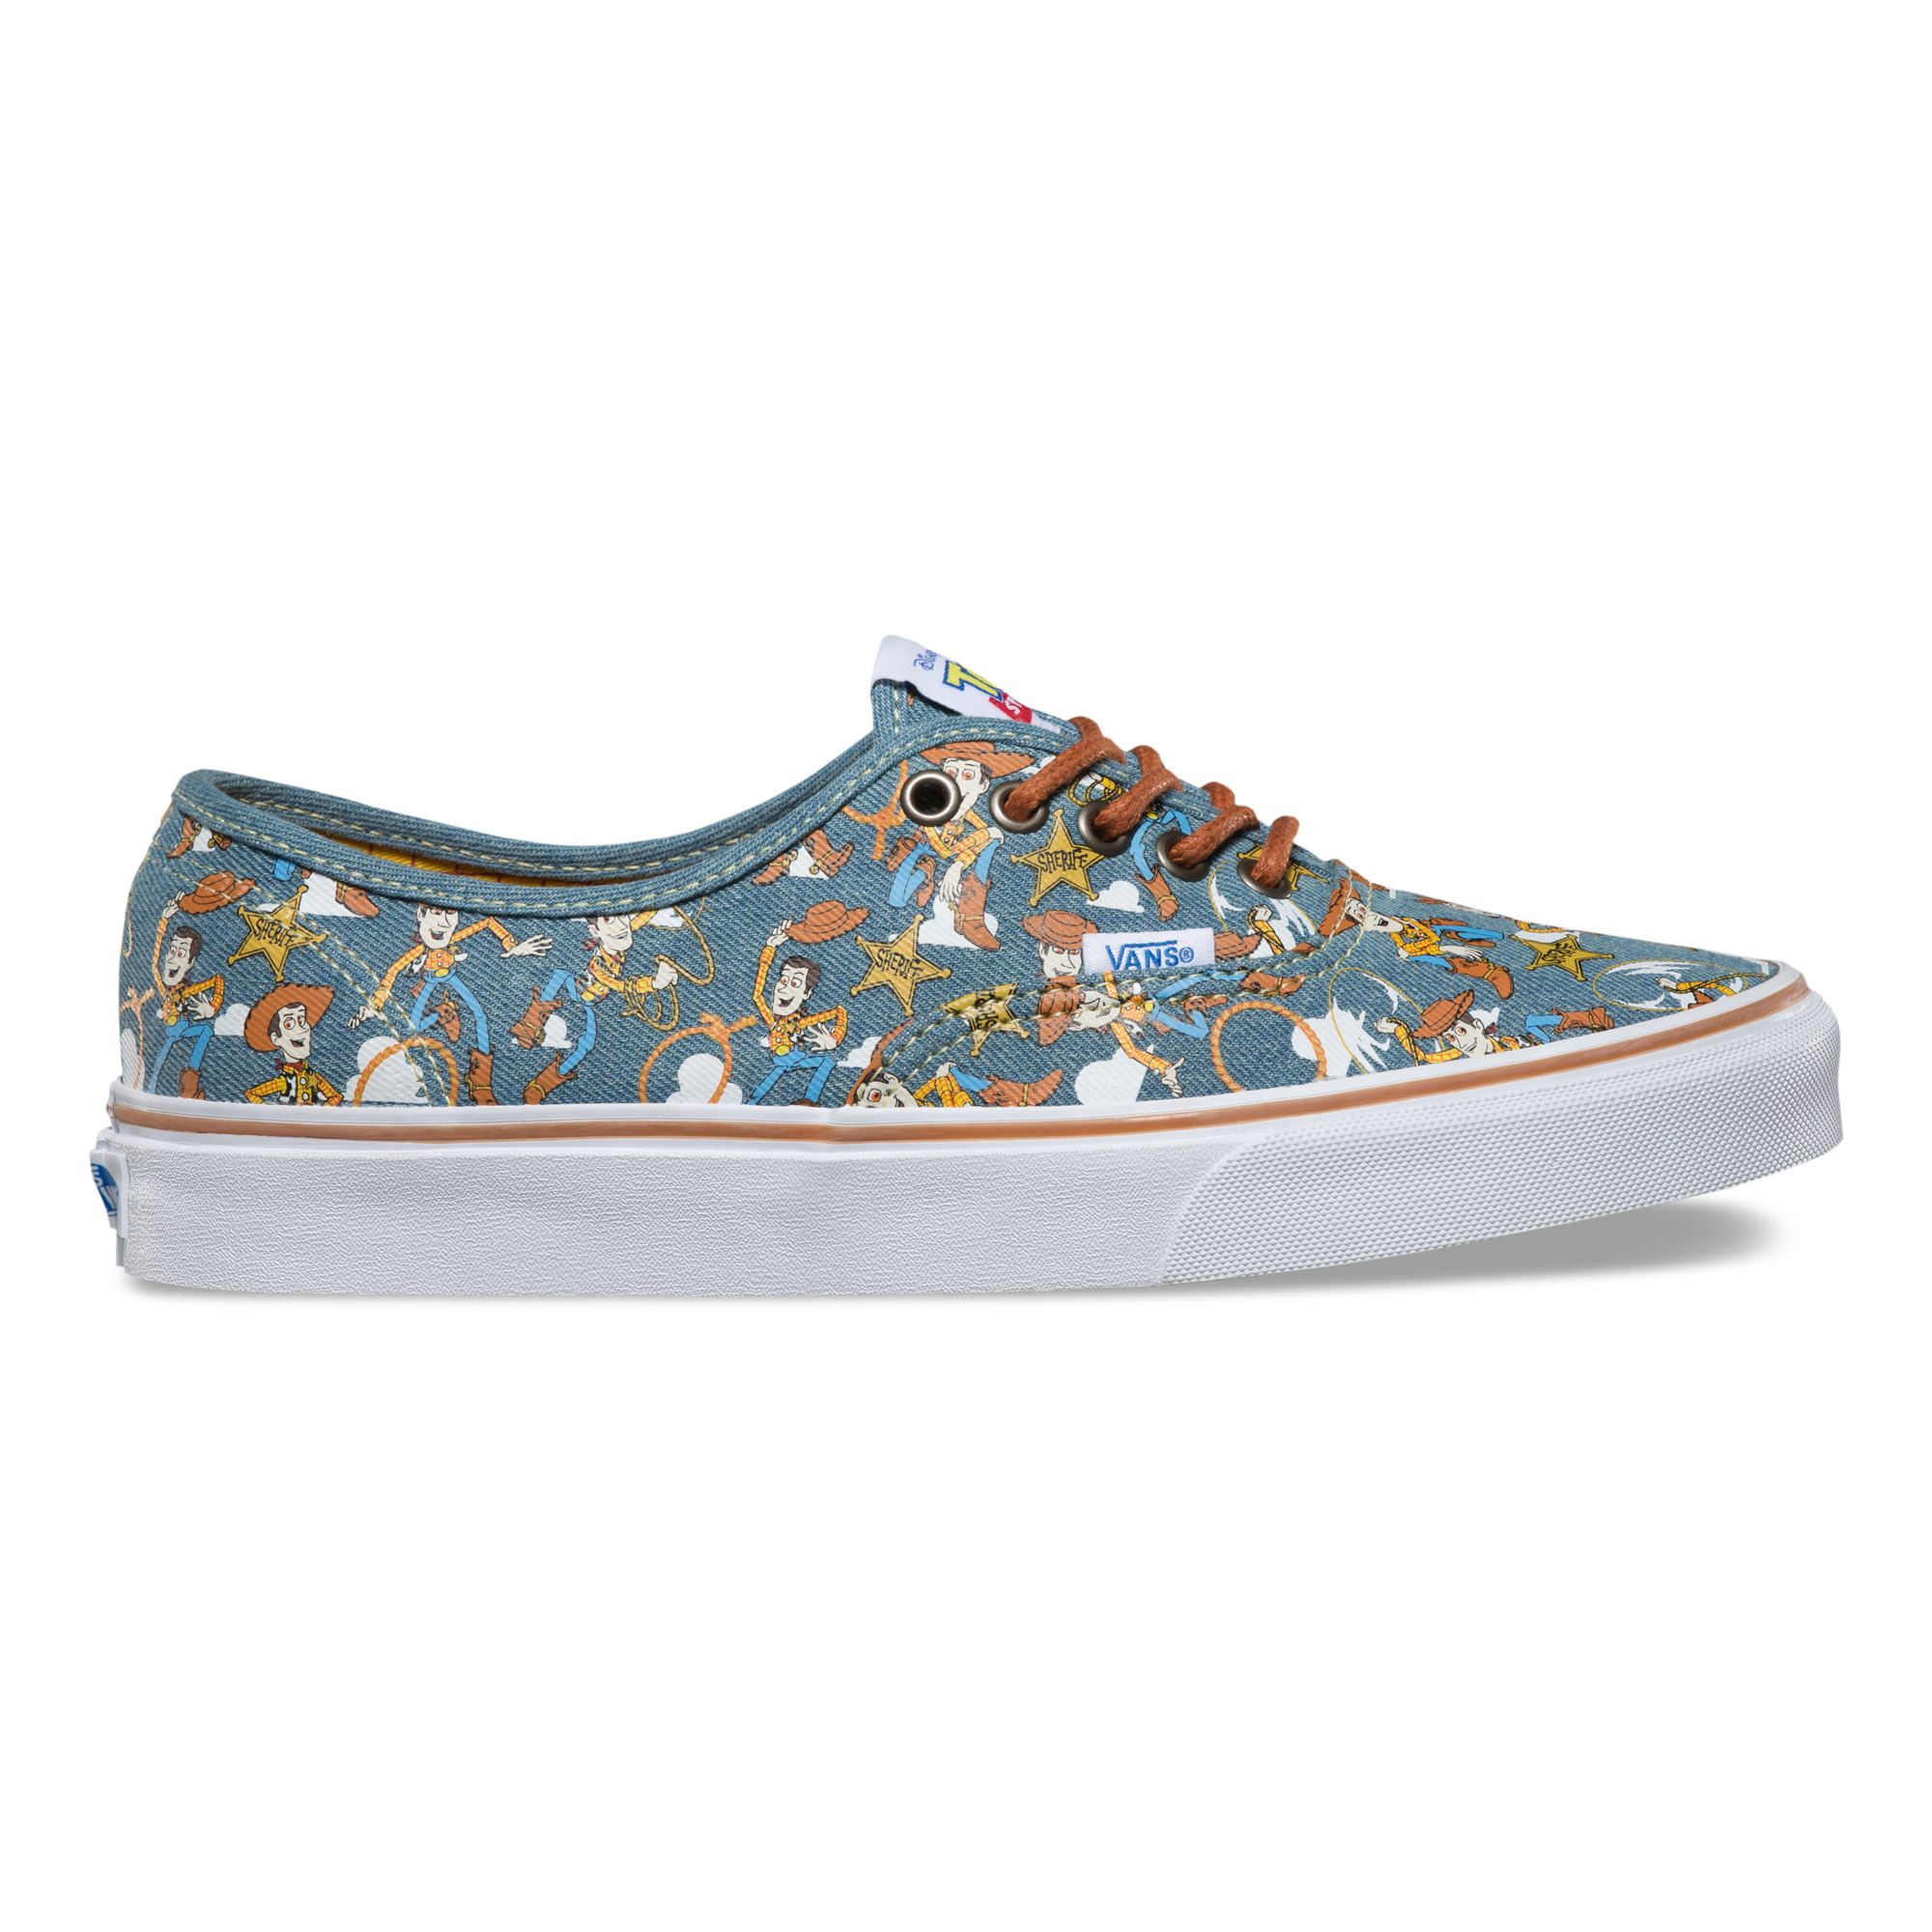 Vans Toy Story Authentic (Toy Story) WoodyTrue White férfi cipő